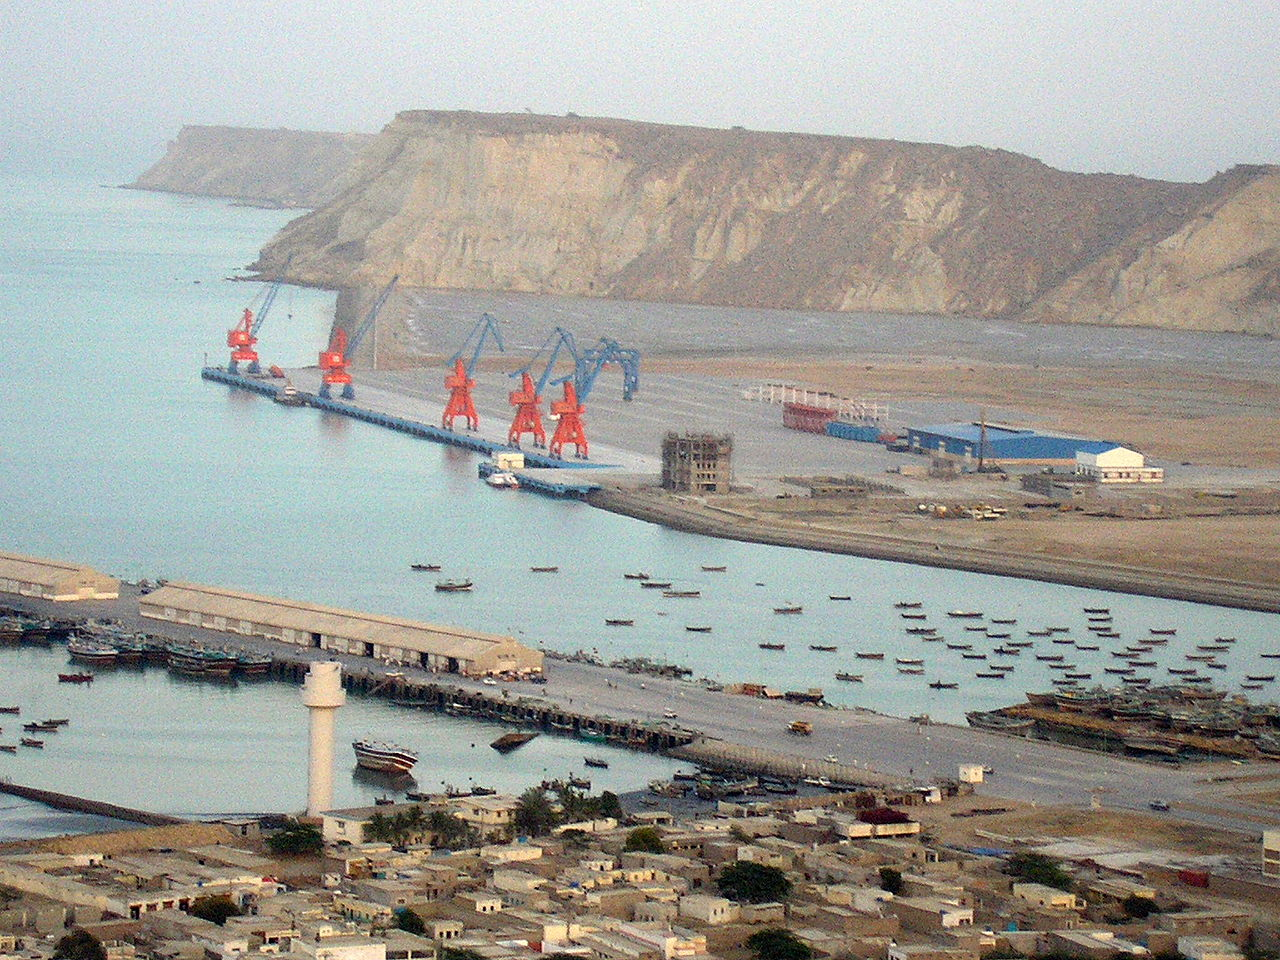 Gwadar Port of Pakistan - pic by commons.wikimedia.org